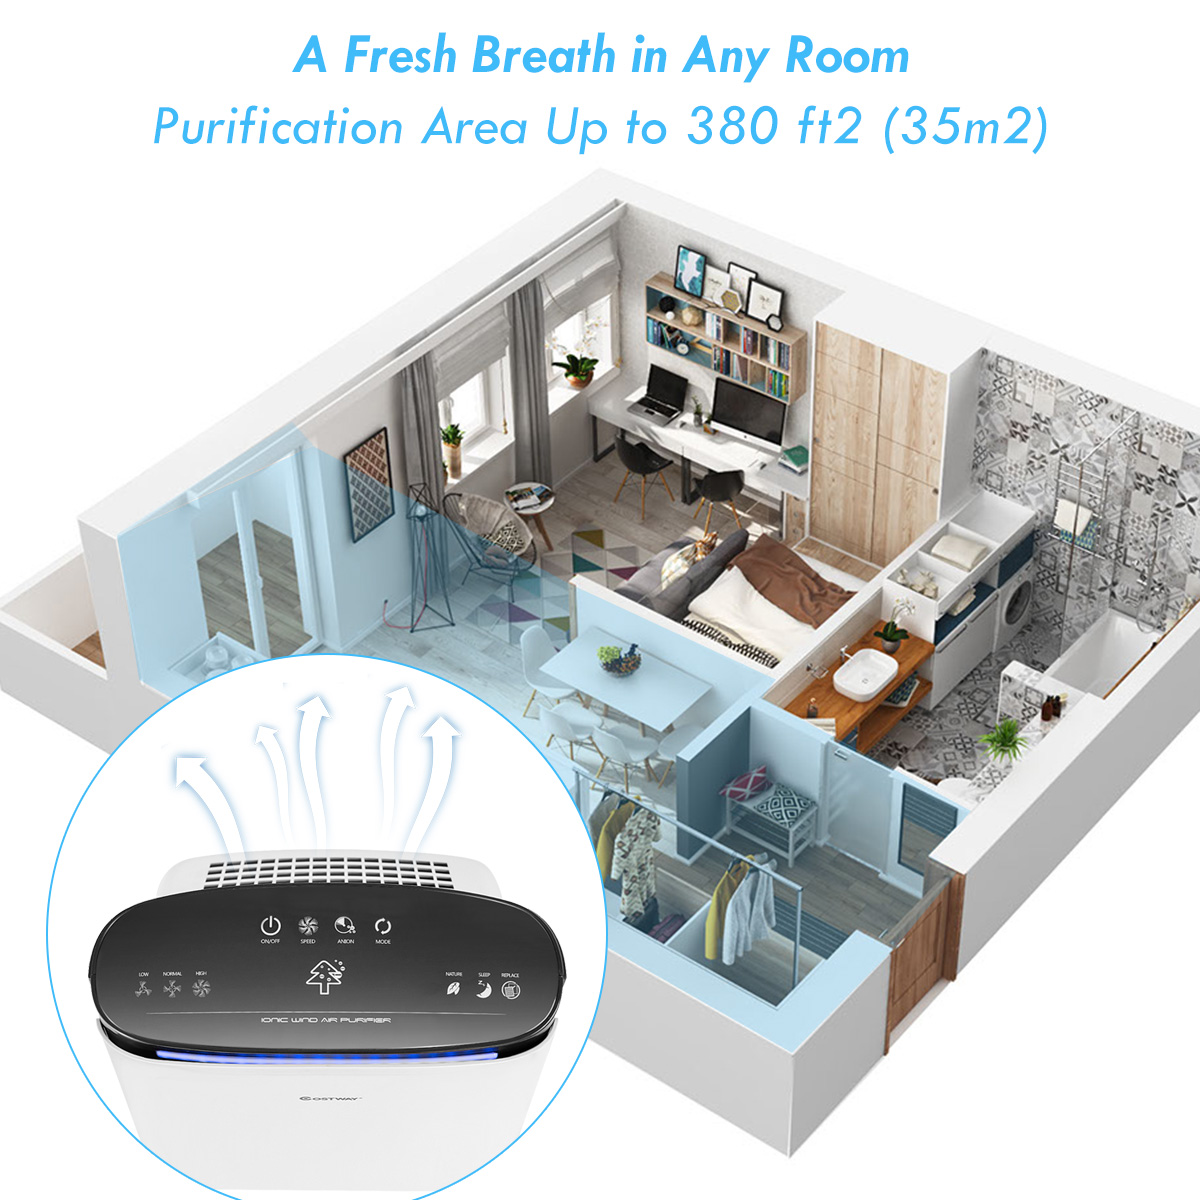 Powerful-Air-Purifier-Cleaner-HEPA-Filter-to-Remove-Odor-Dust-Mold-Smoke thumbnail 4